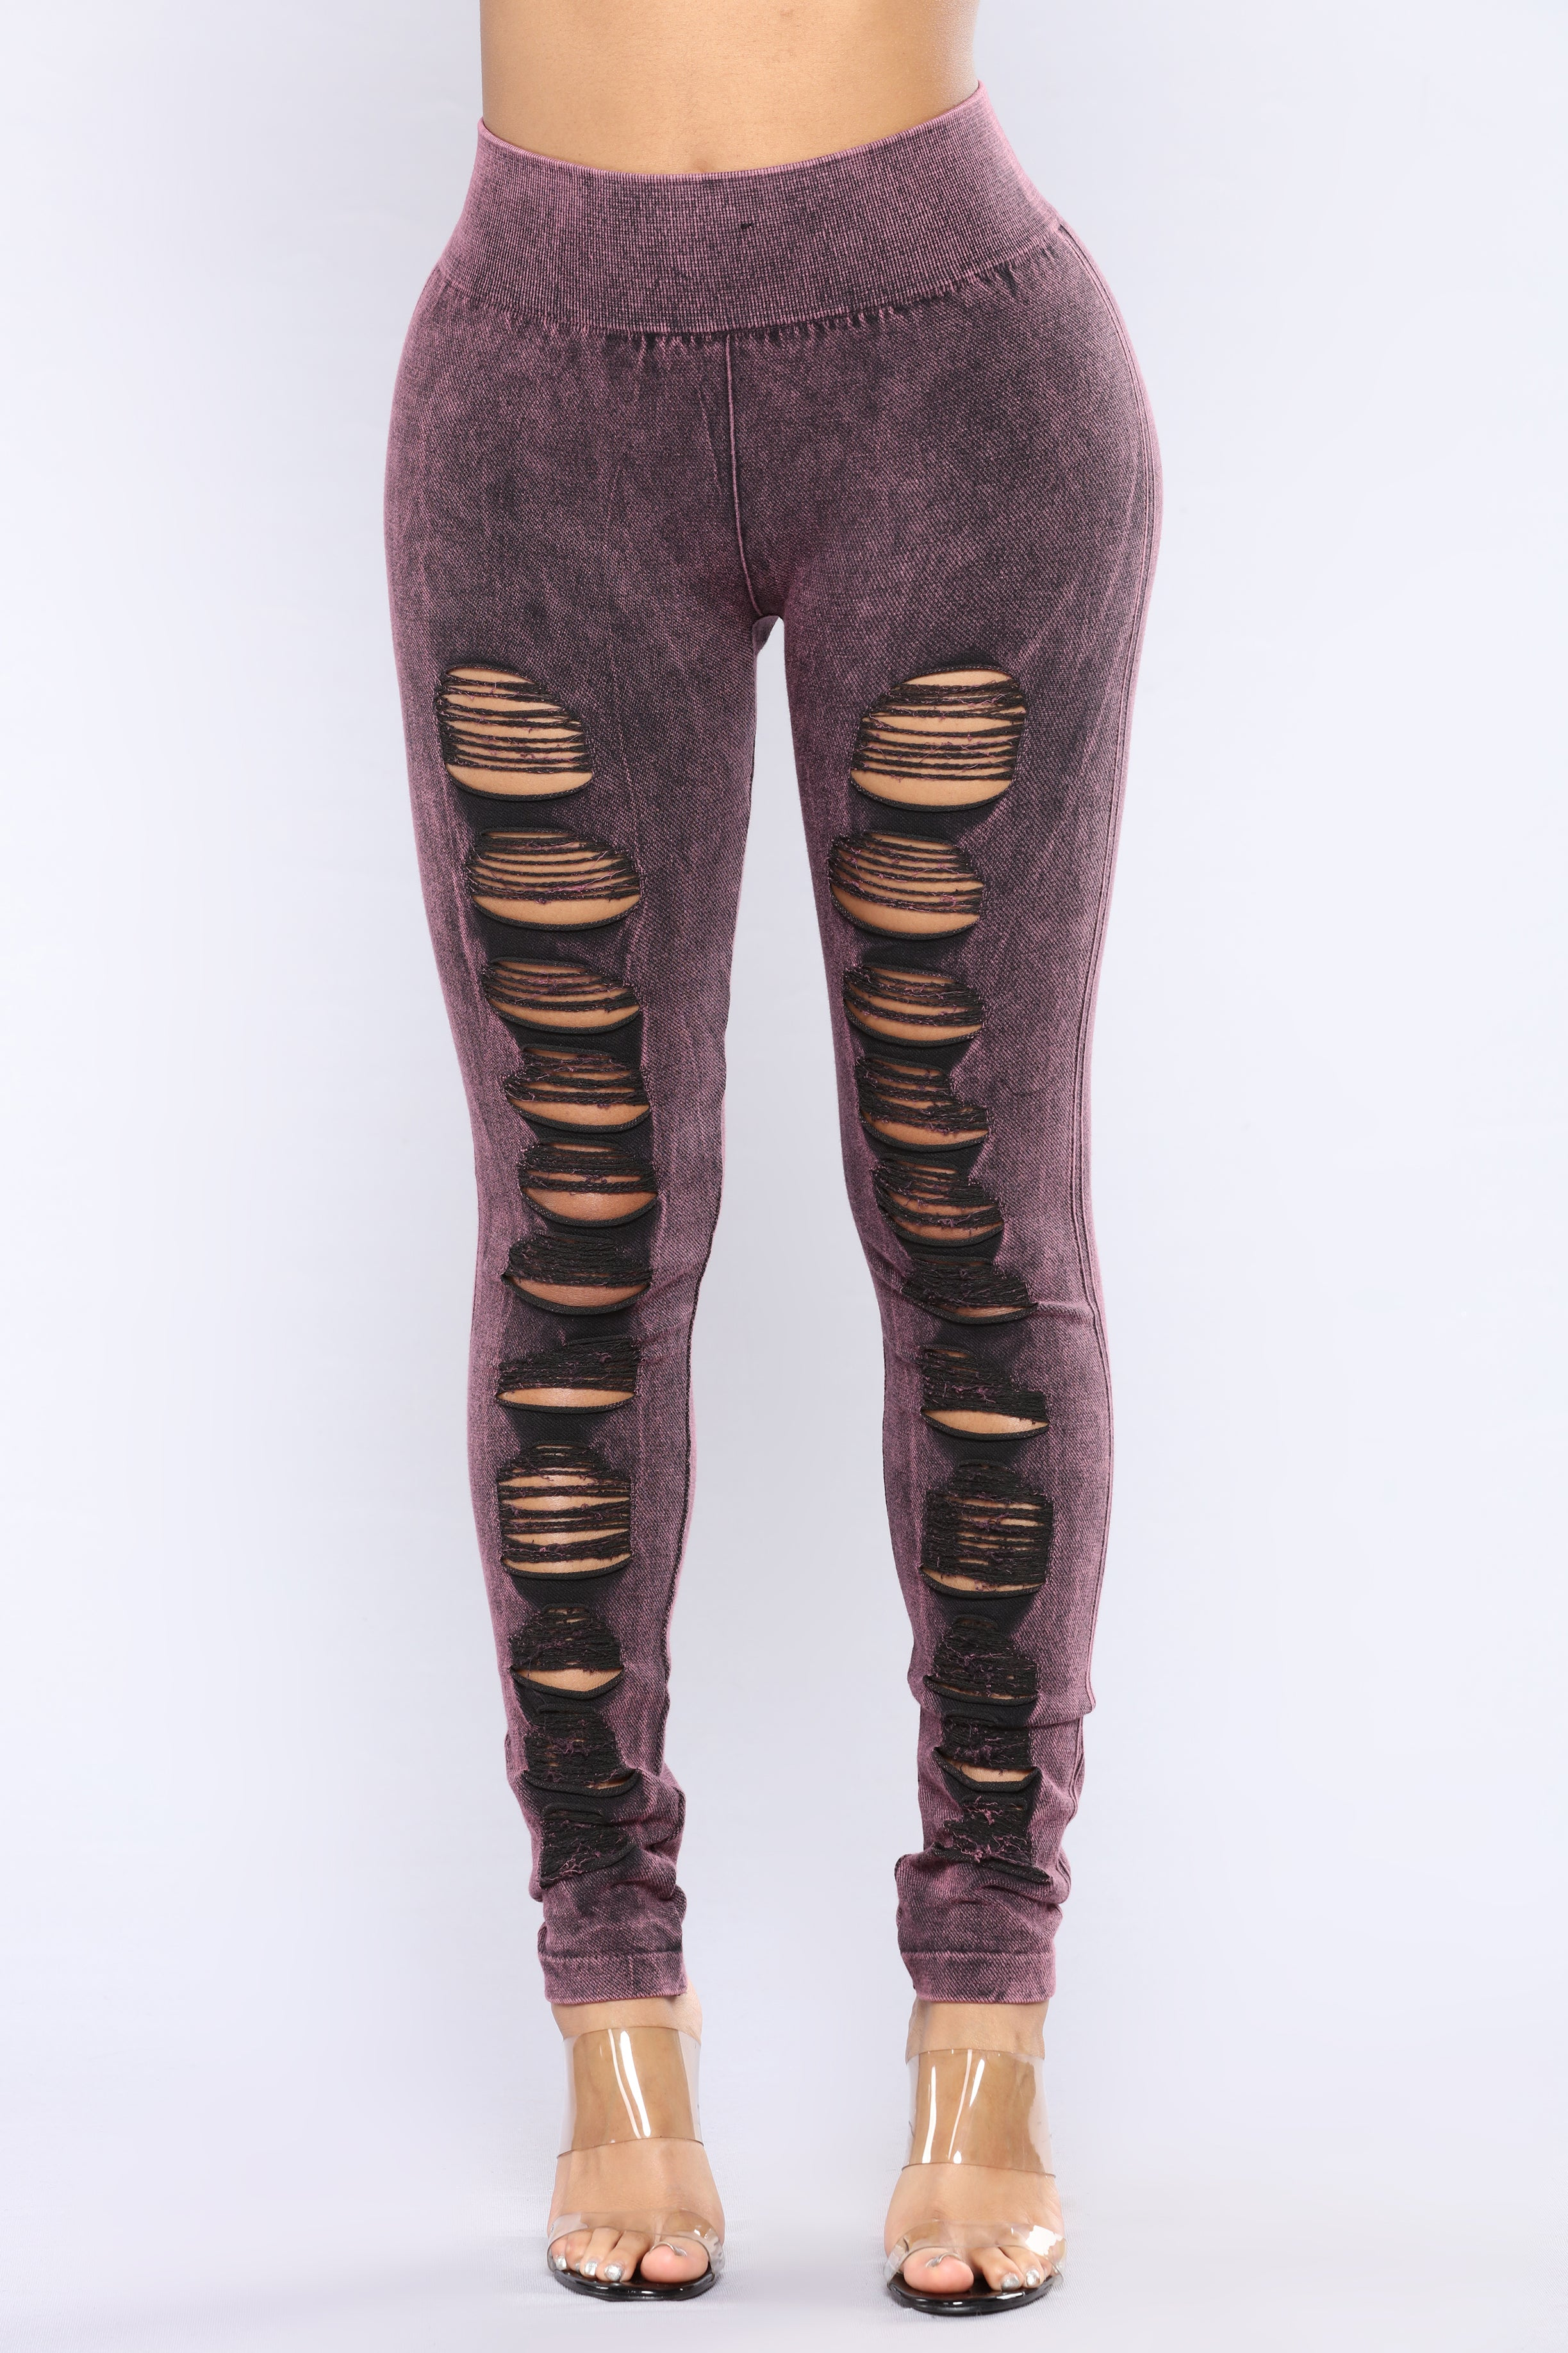 Iu0026#39;m Lost Distressed Seamless Leggings - Wine